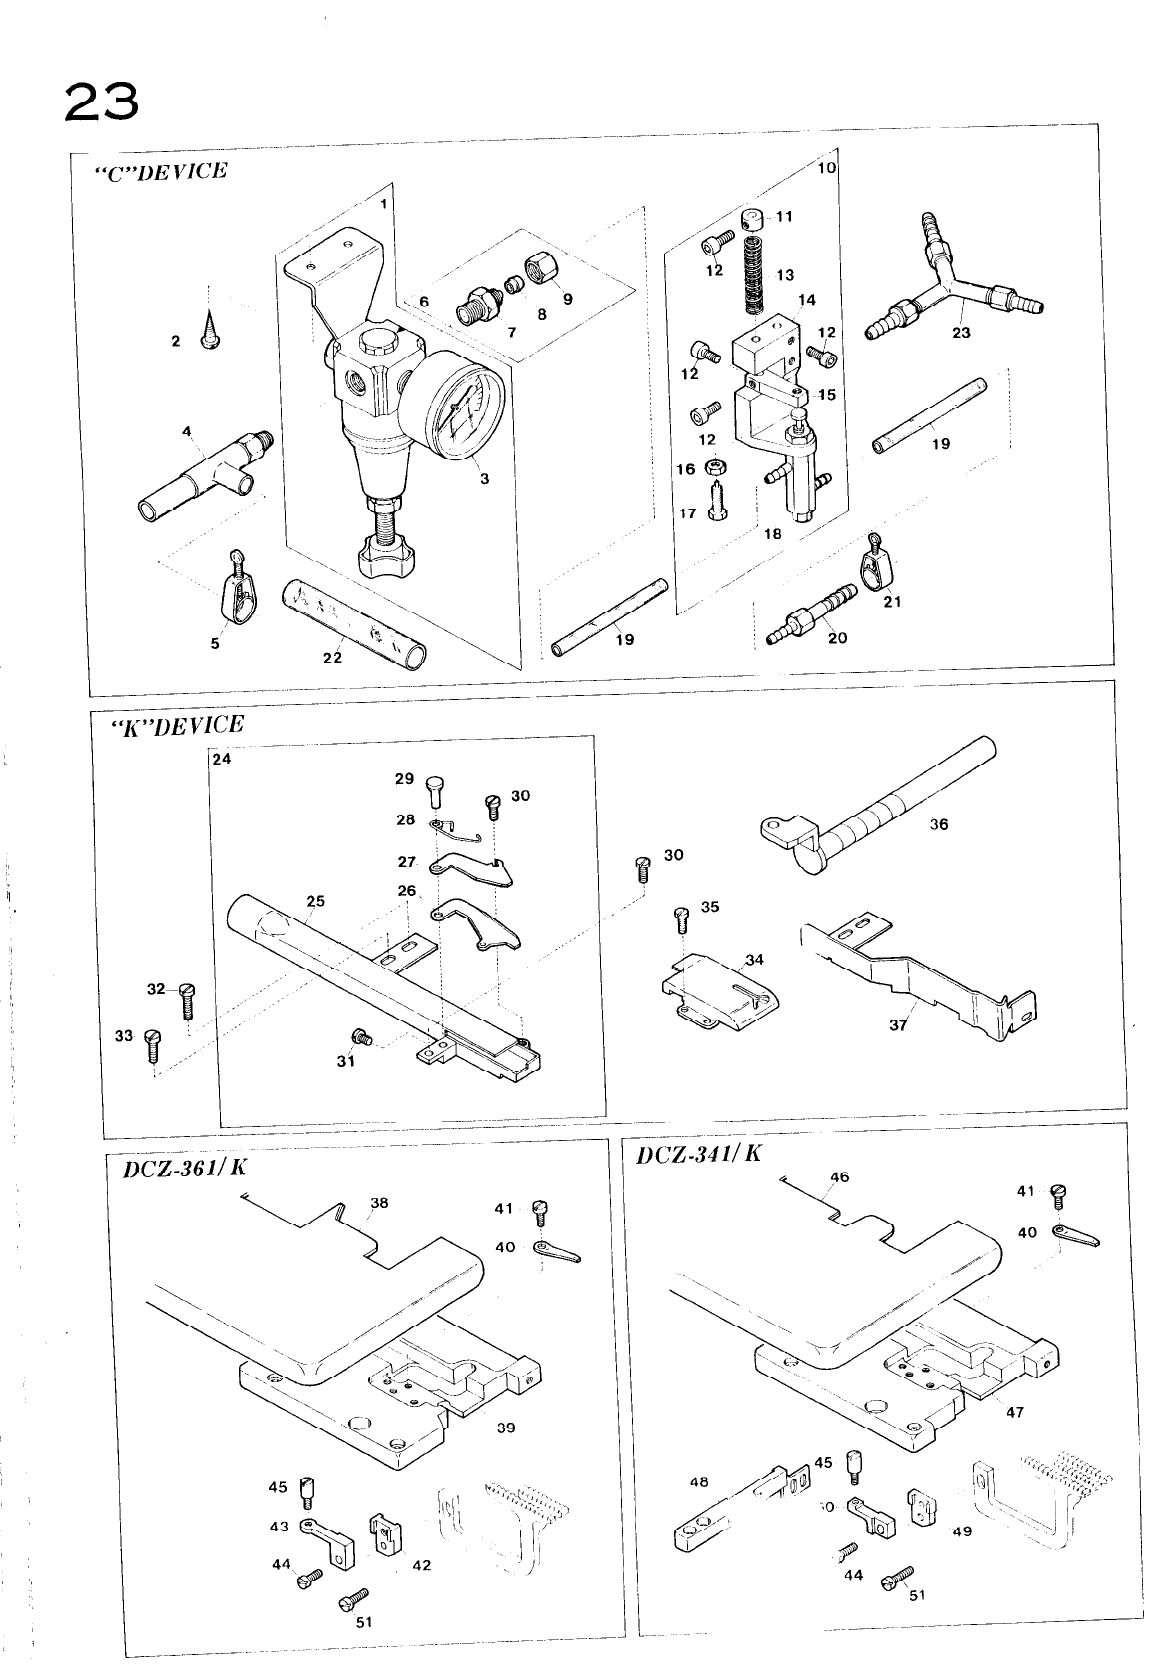 YAMATO DCZ 361 INSTRUCTION MANUAL